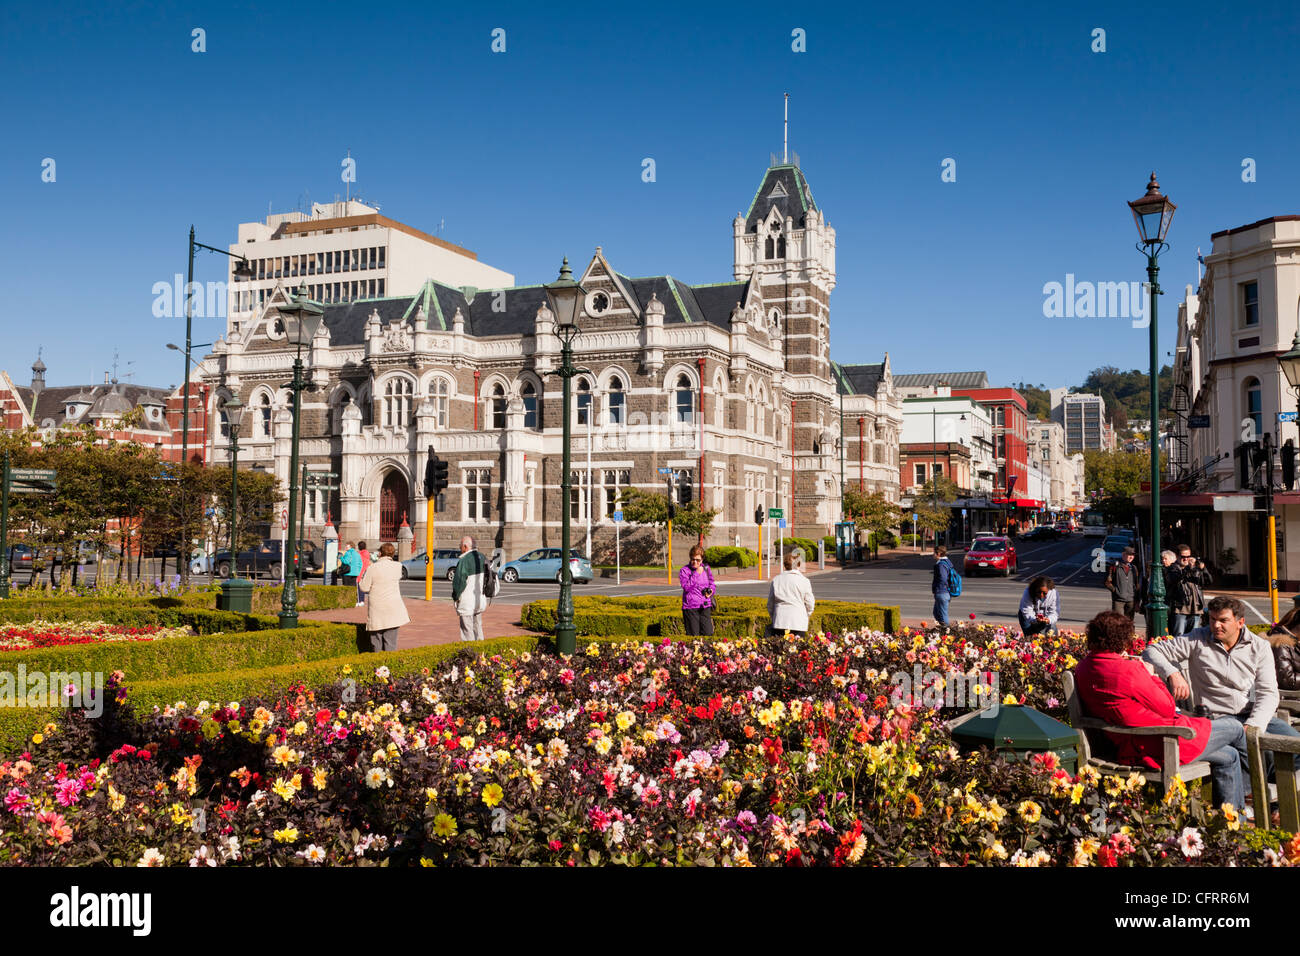 Dunedin Law Court, viewed across Anzac Square, Otago, New Zealand. - Stock Image